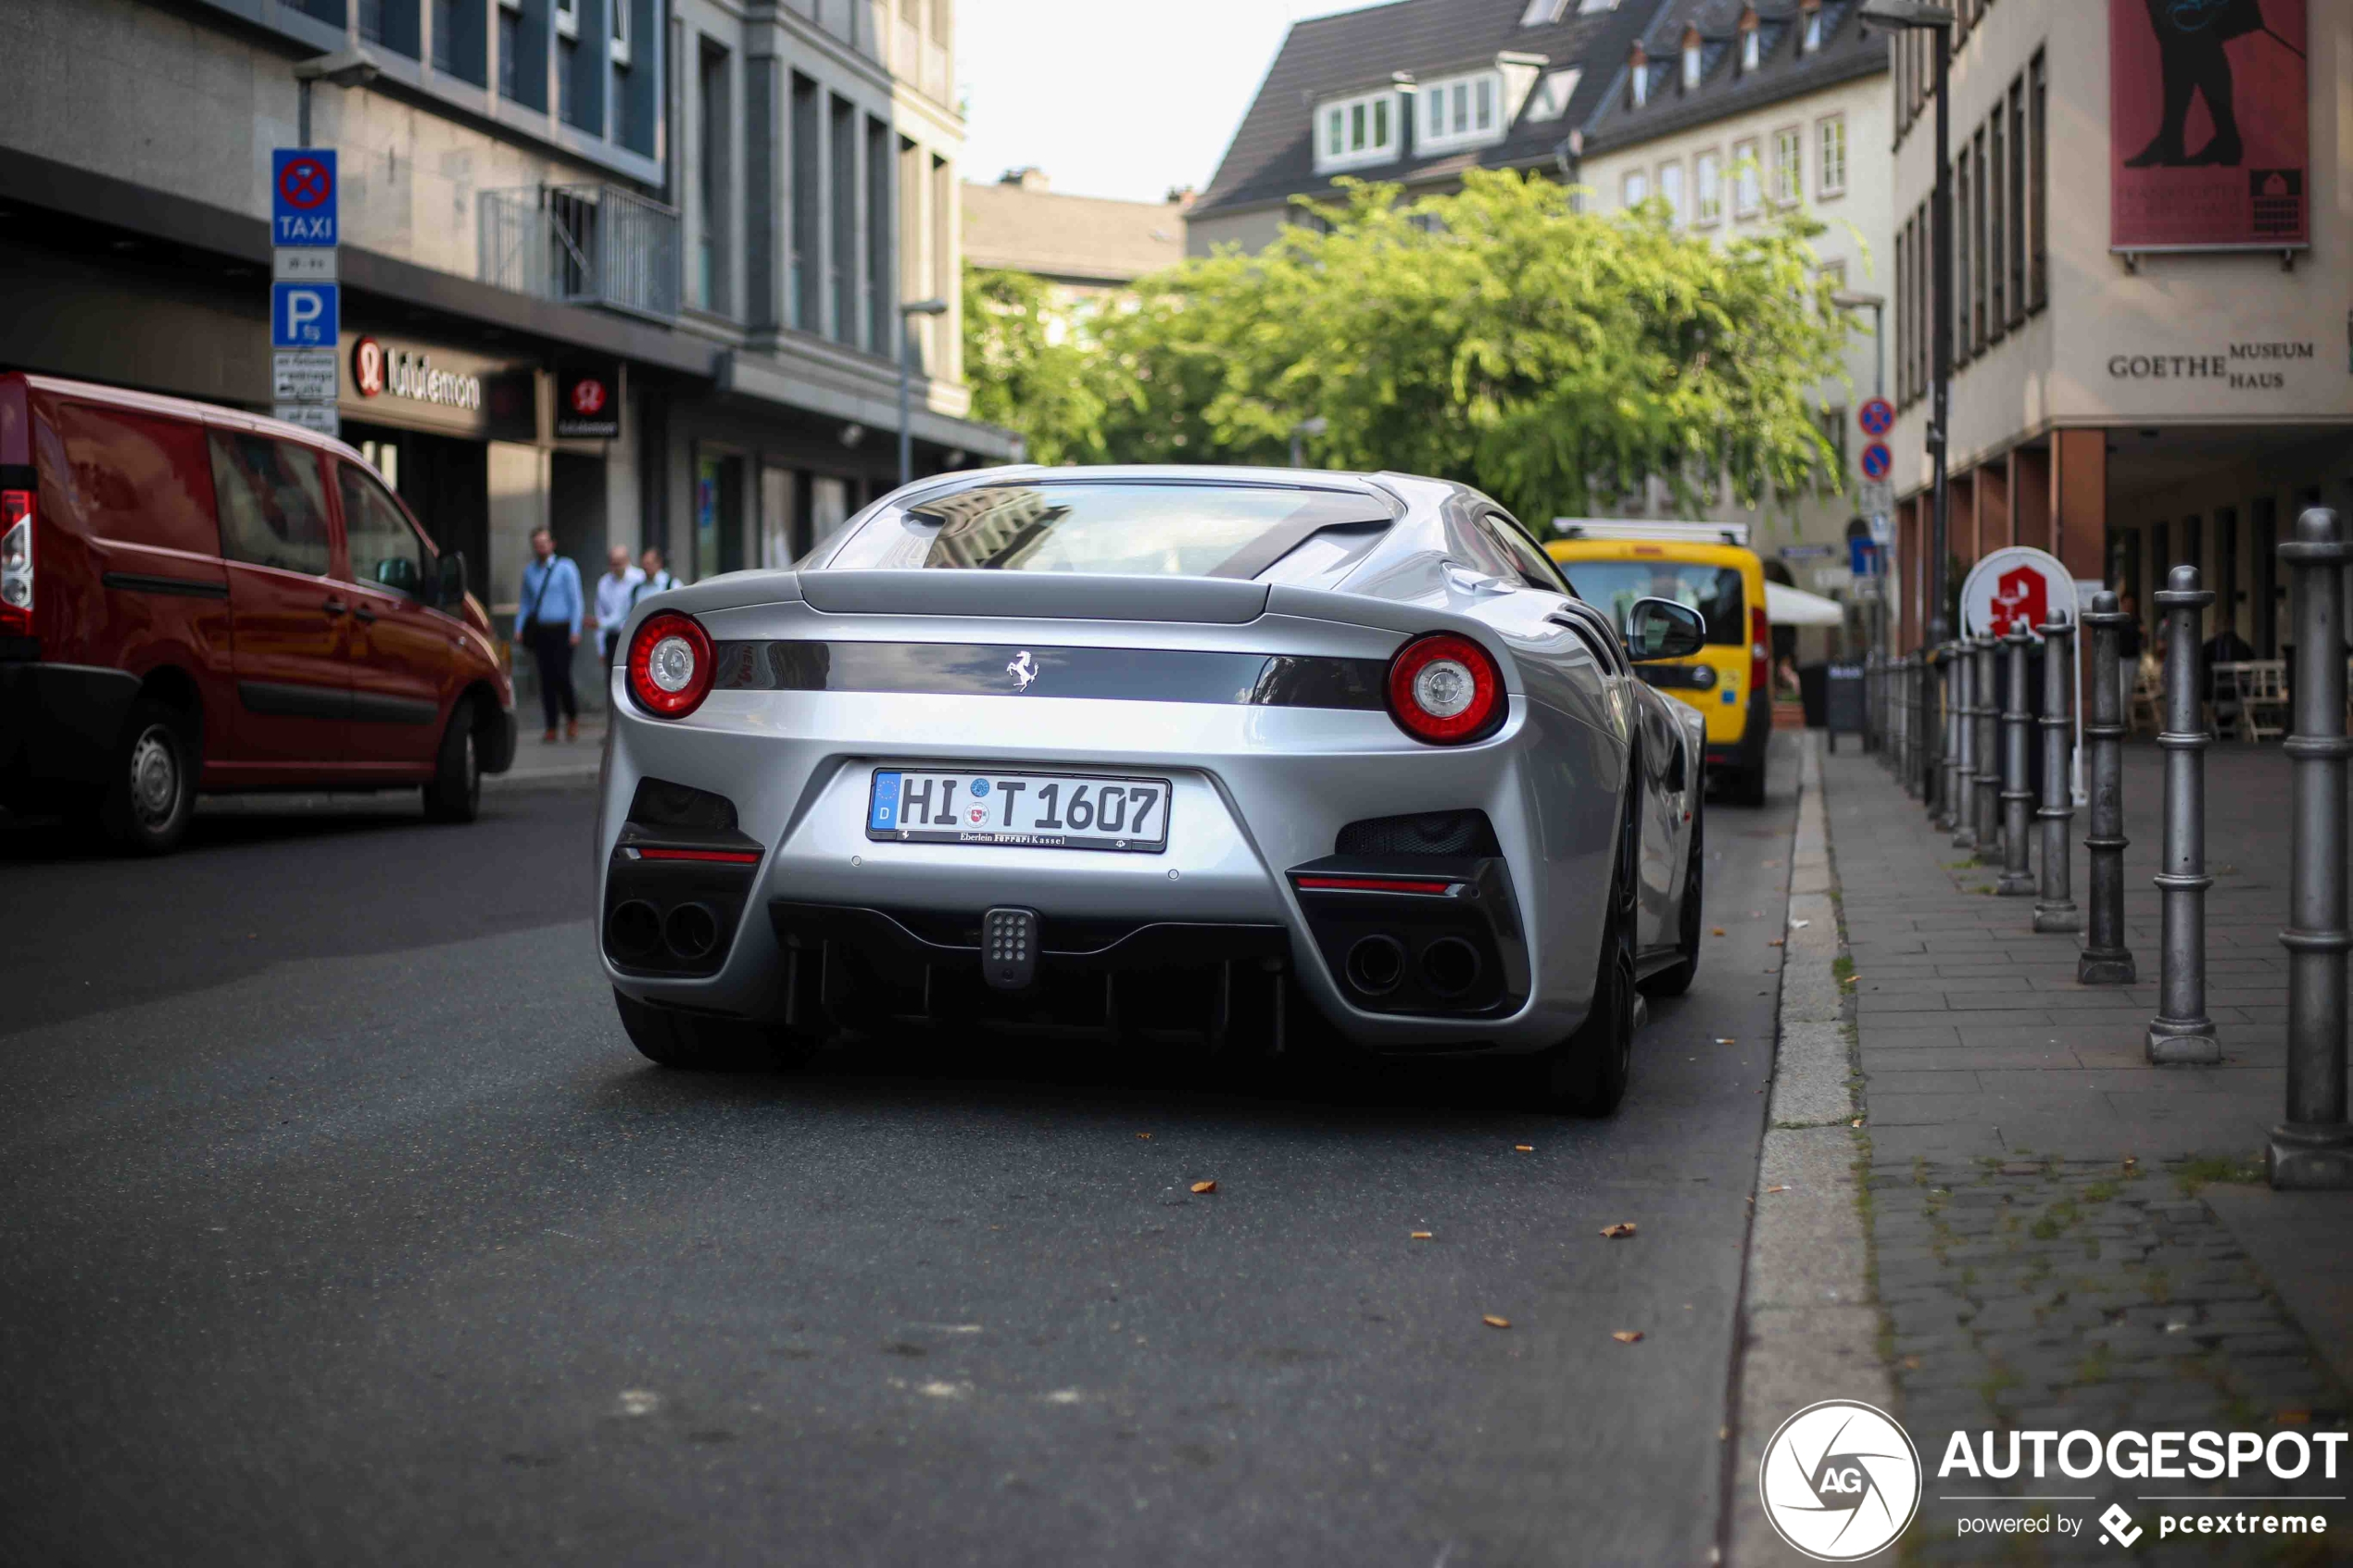 Silver Ferrari F12tdf is a beauty